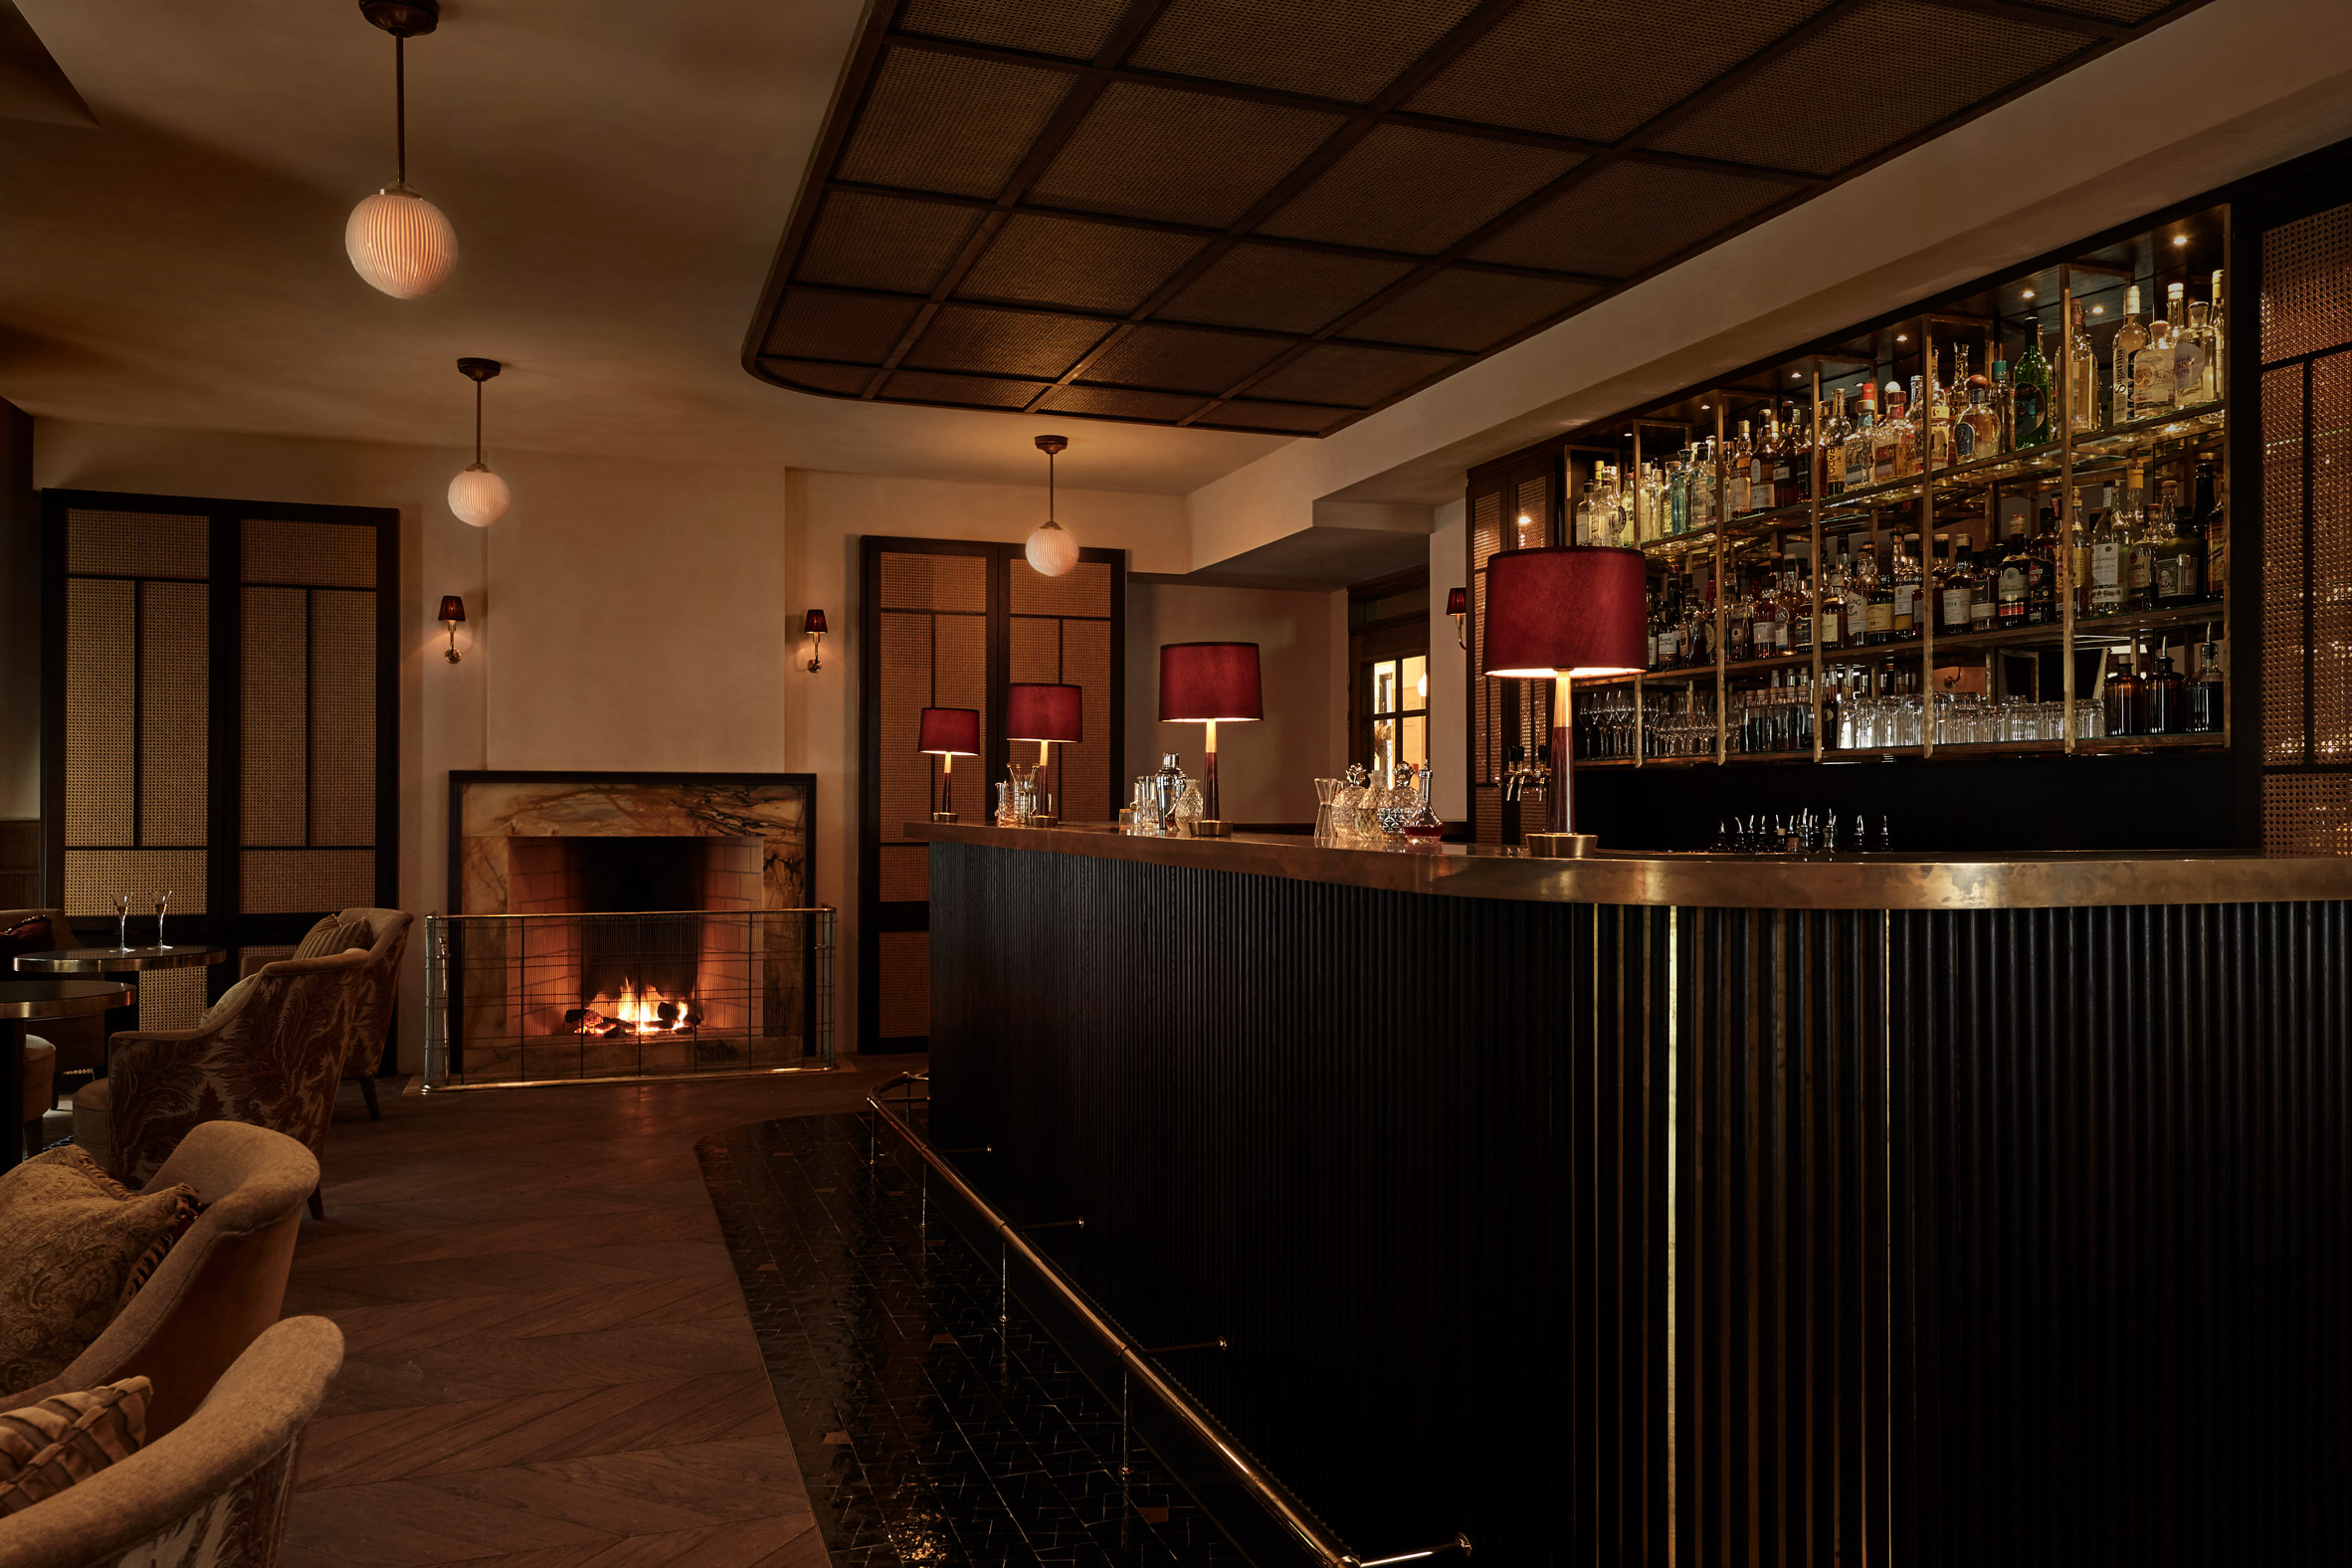 Tata, the cocktail bar at Hotel Sanders in Copenhagen, designed by Lind + Almond